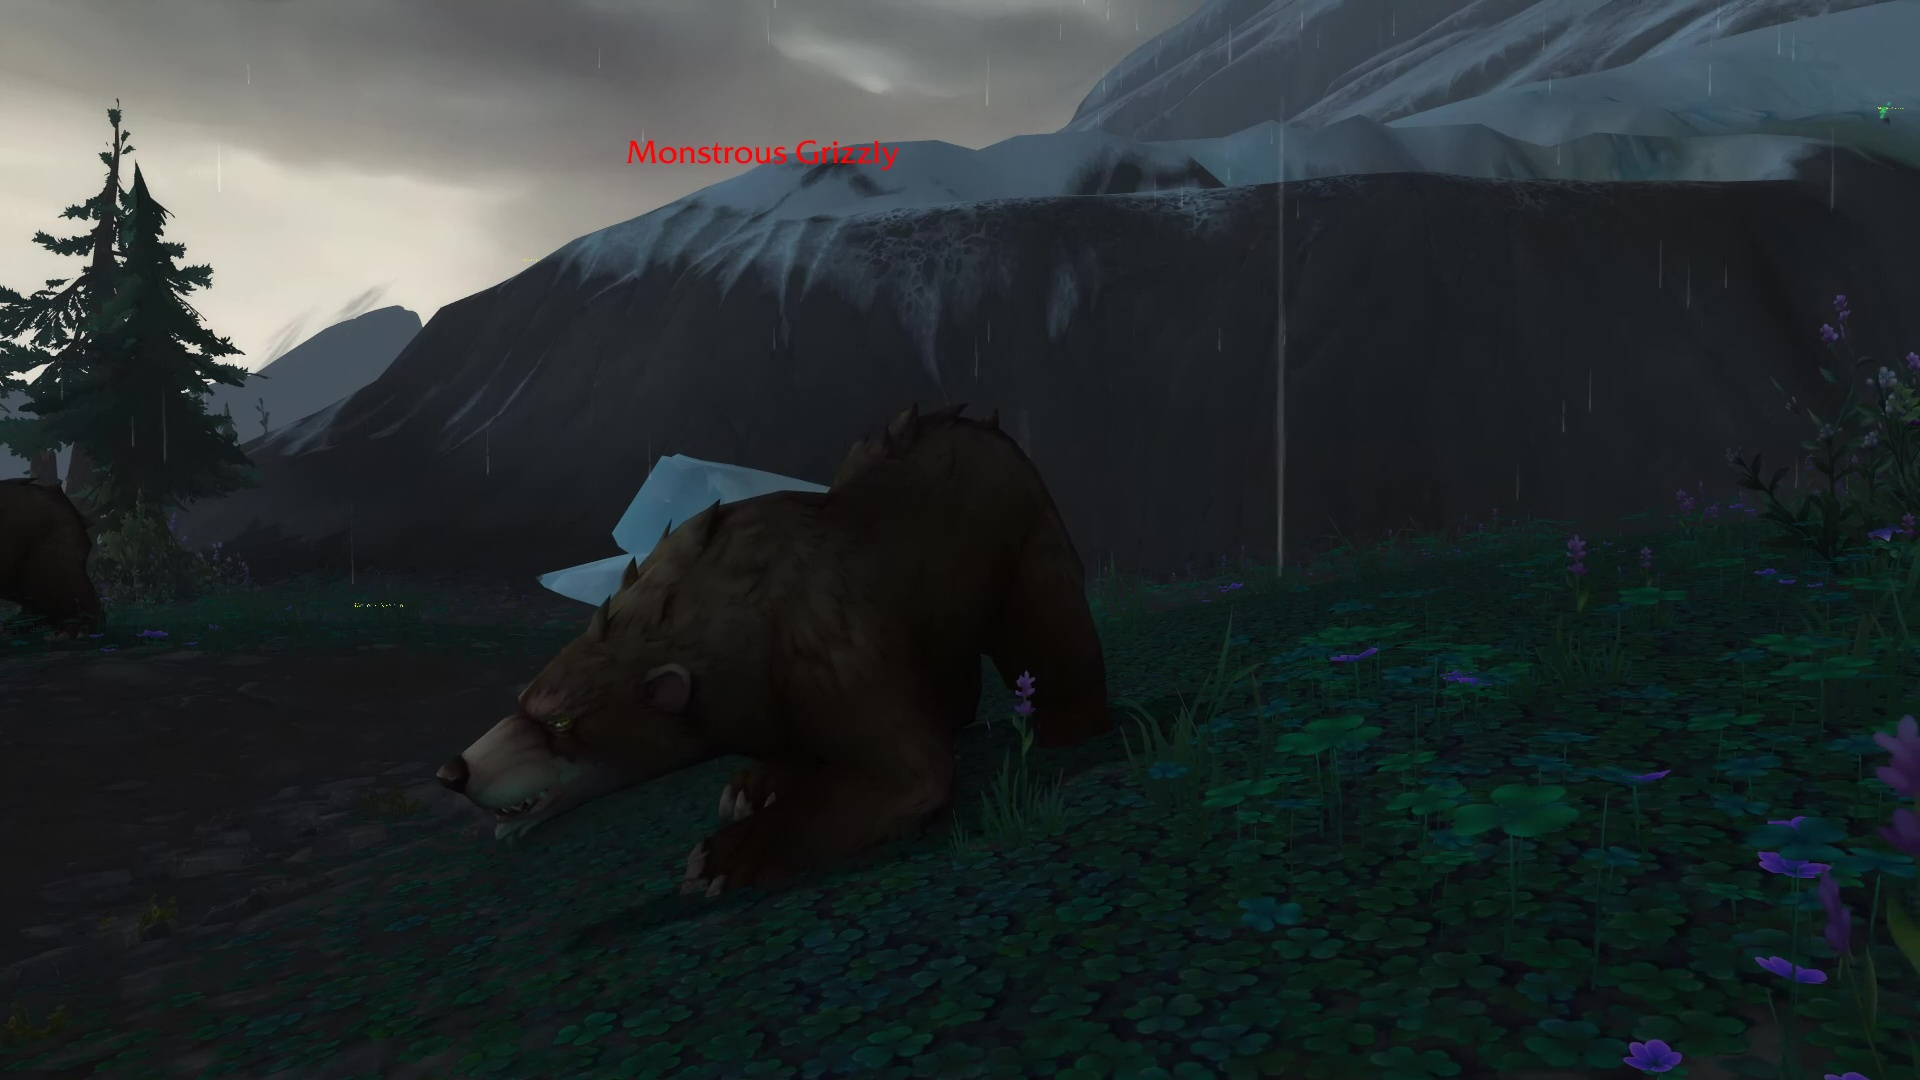 monstruous grizzly